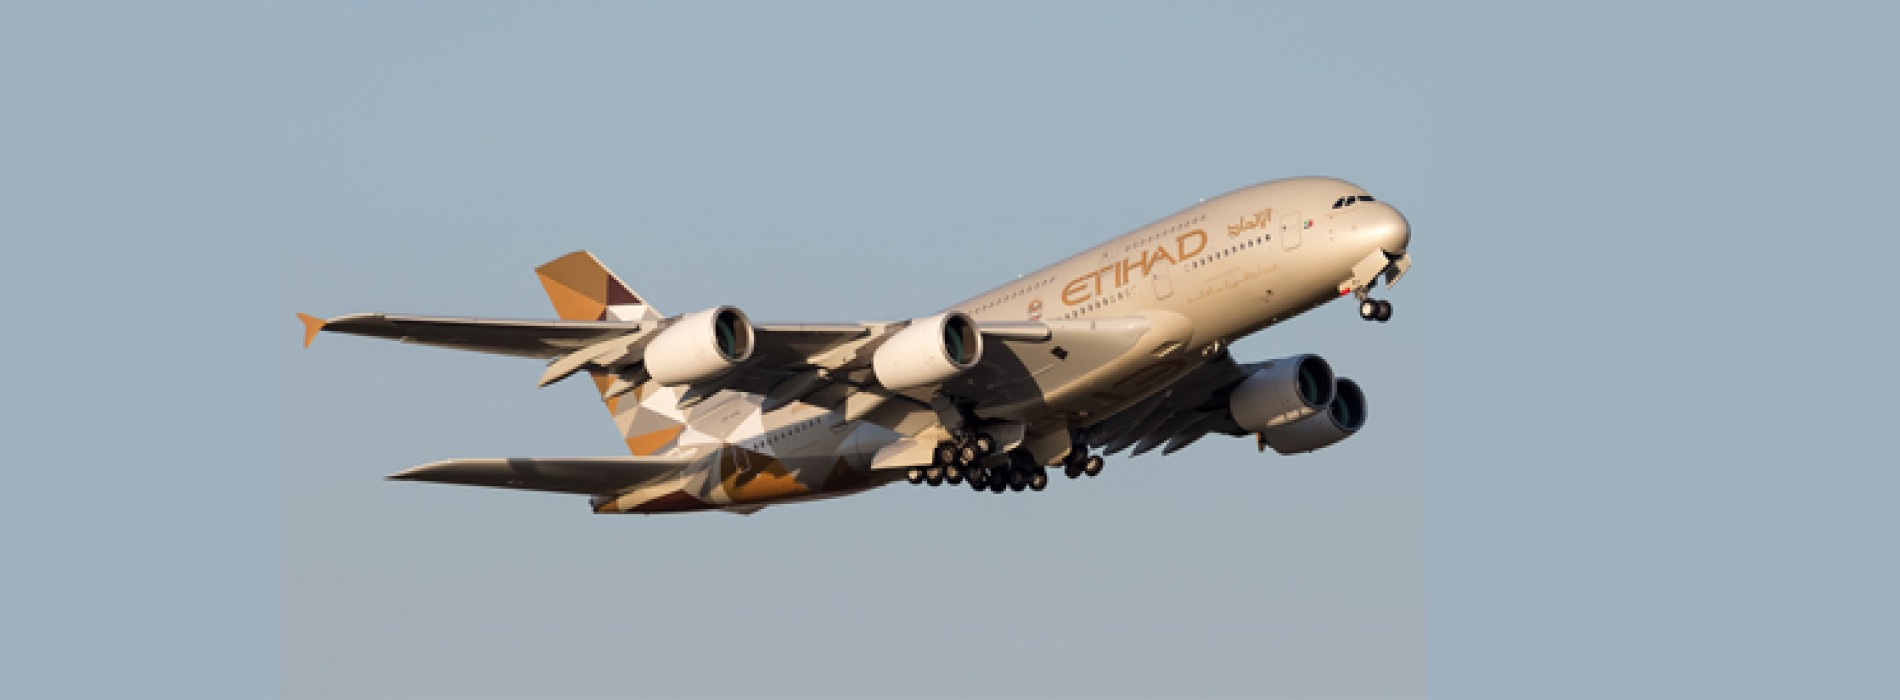 Etihad Airways welcomes First A380 flights to New York